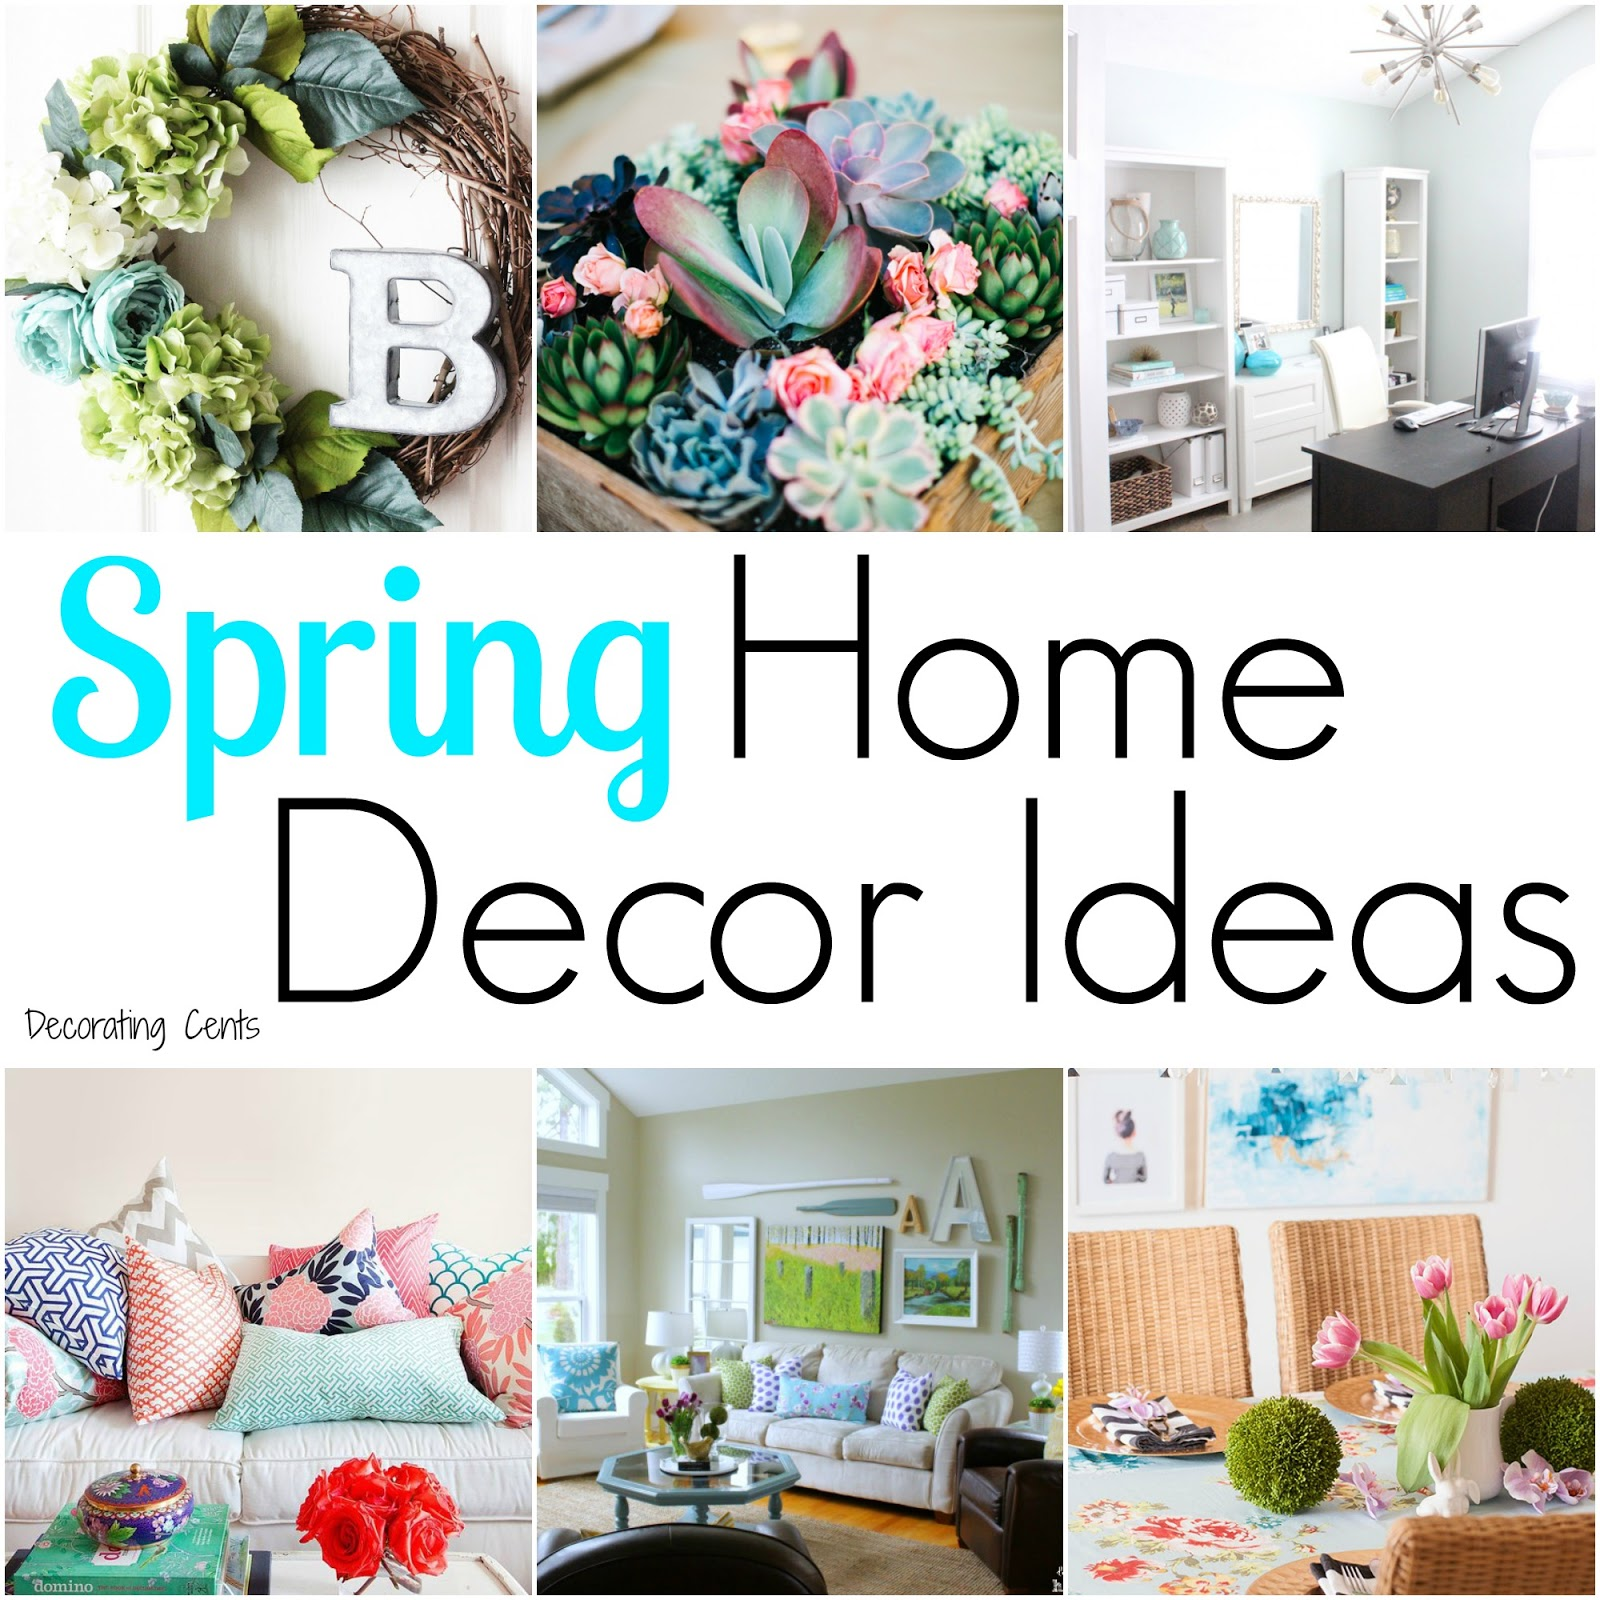 Decorating cents spring home decor ideas for Decorations for a home